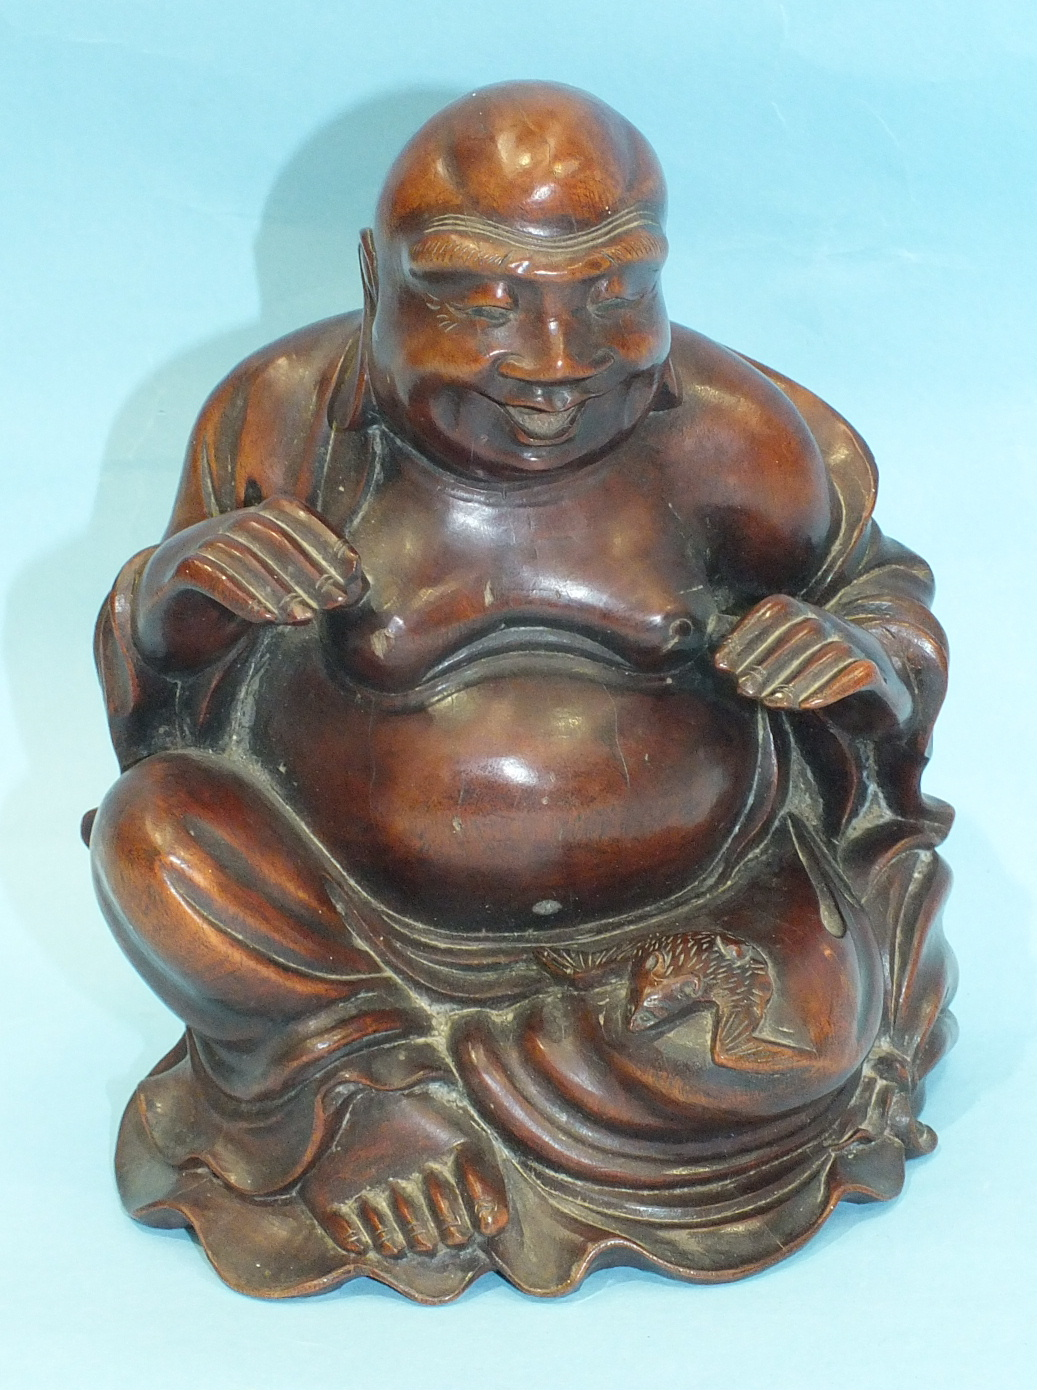 A large 19th century Chinese carved wood figure of a portly Poutai, seated and with a bat on his